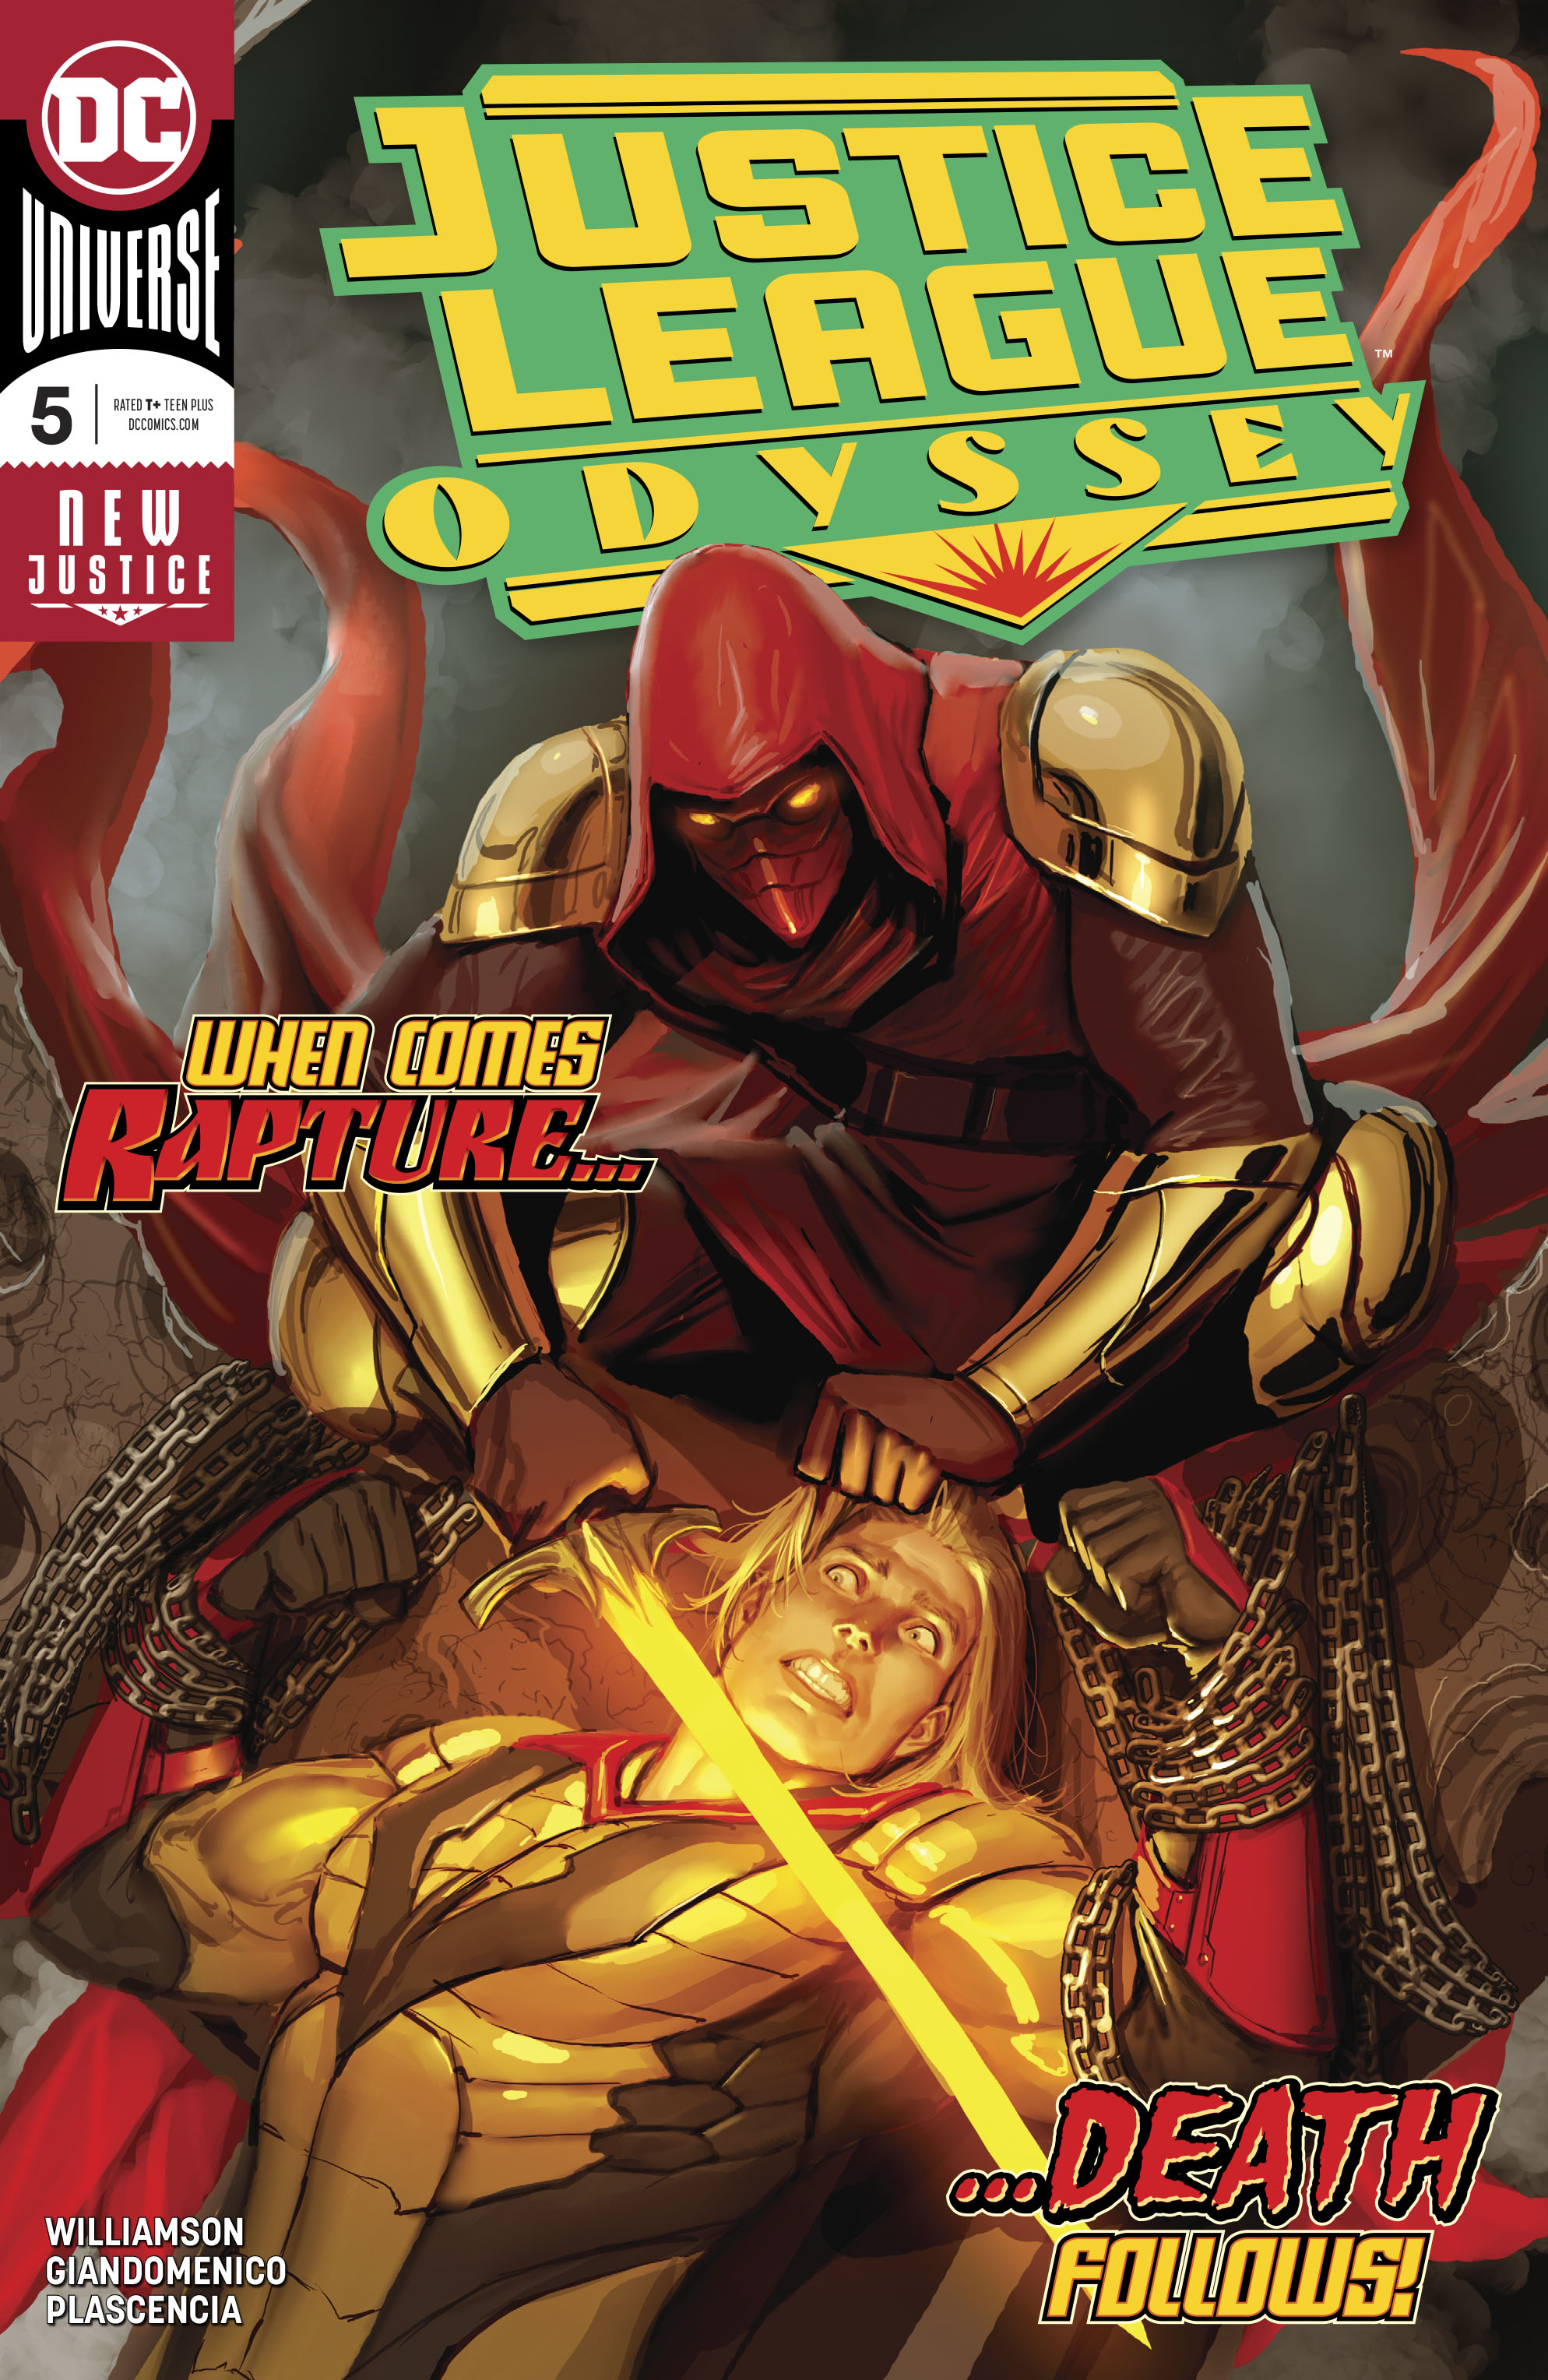 Justice League Odyssey Vol 1 5